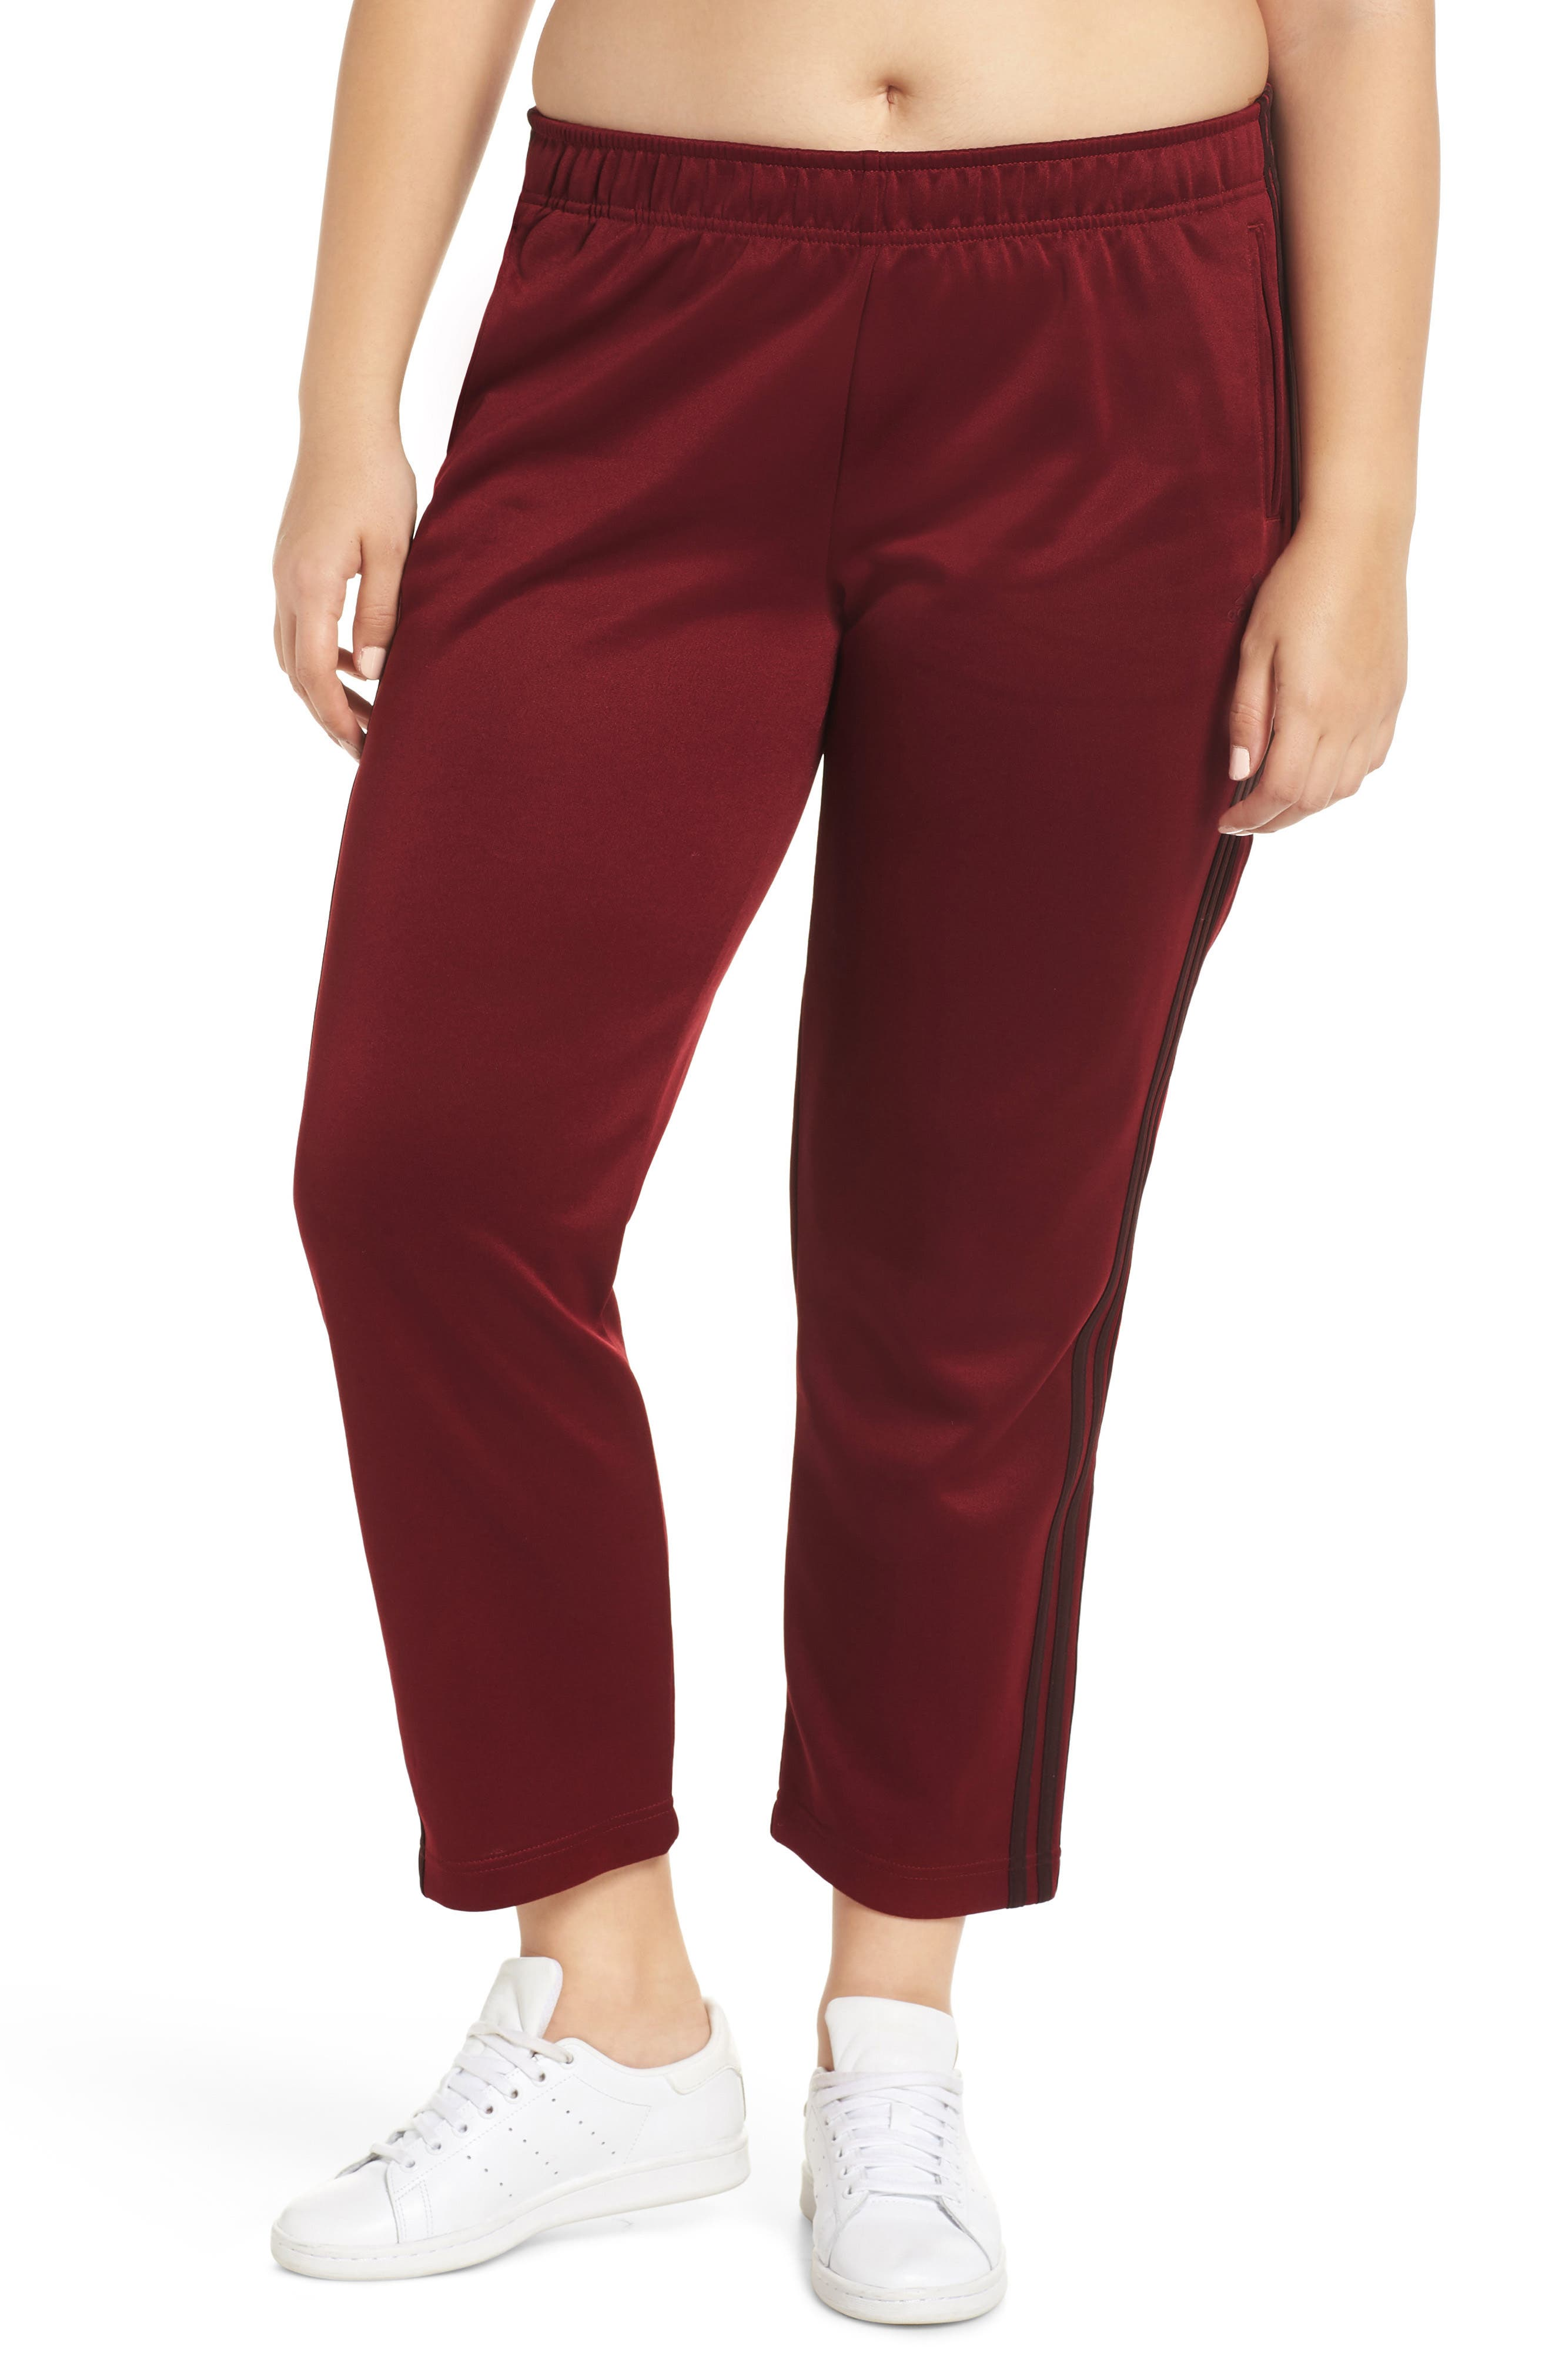 Tricot Snap Pants,                             Alternate thumbnail 2, color,                             NOBLE MAROON/ NIGHT RED